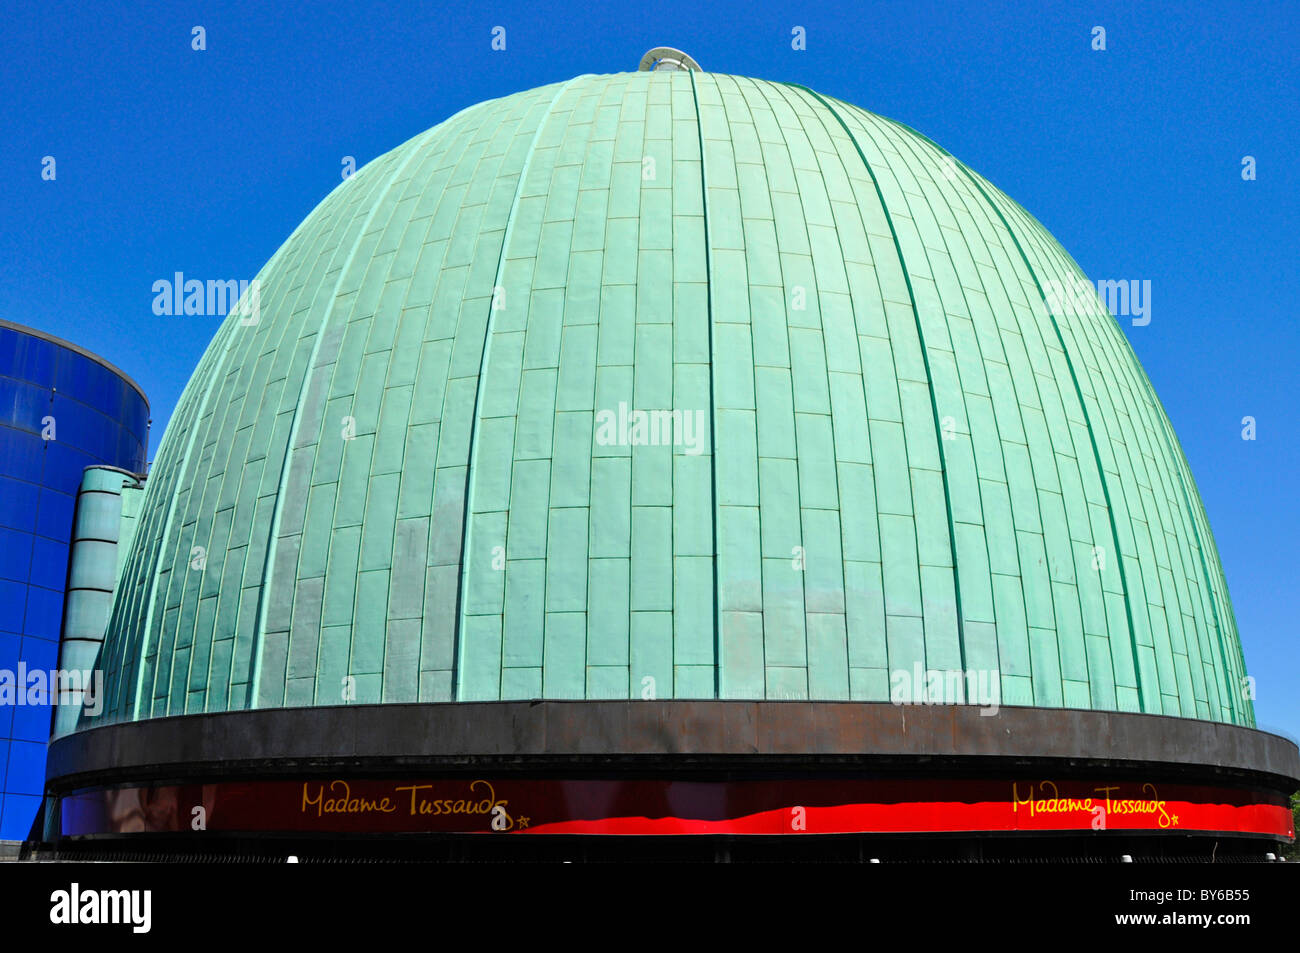 Copper cladding to roof of dome over Madame Tussauds showing typical green patina colour after weathering London - Stock Image